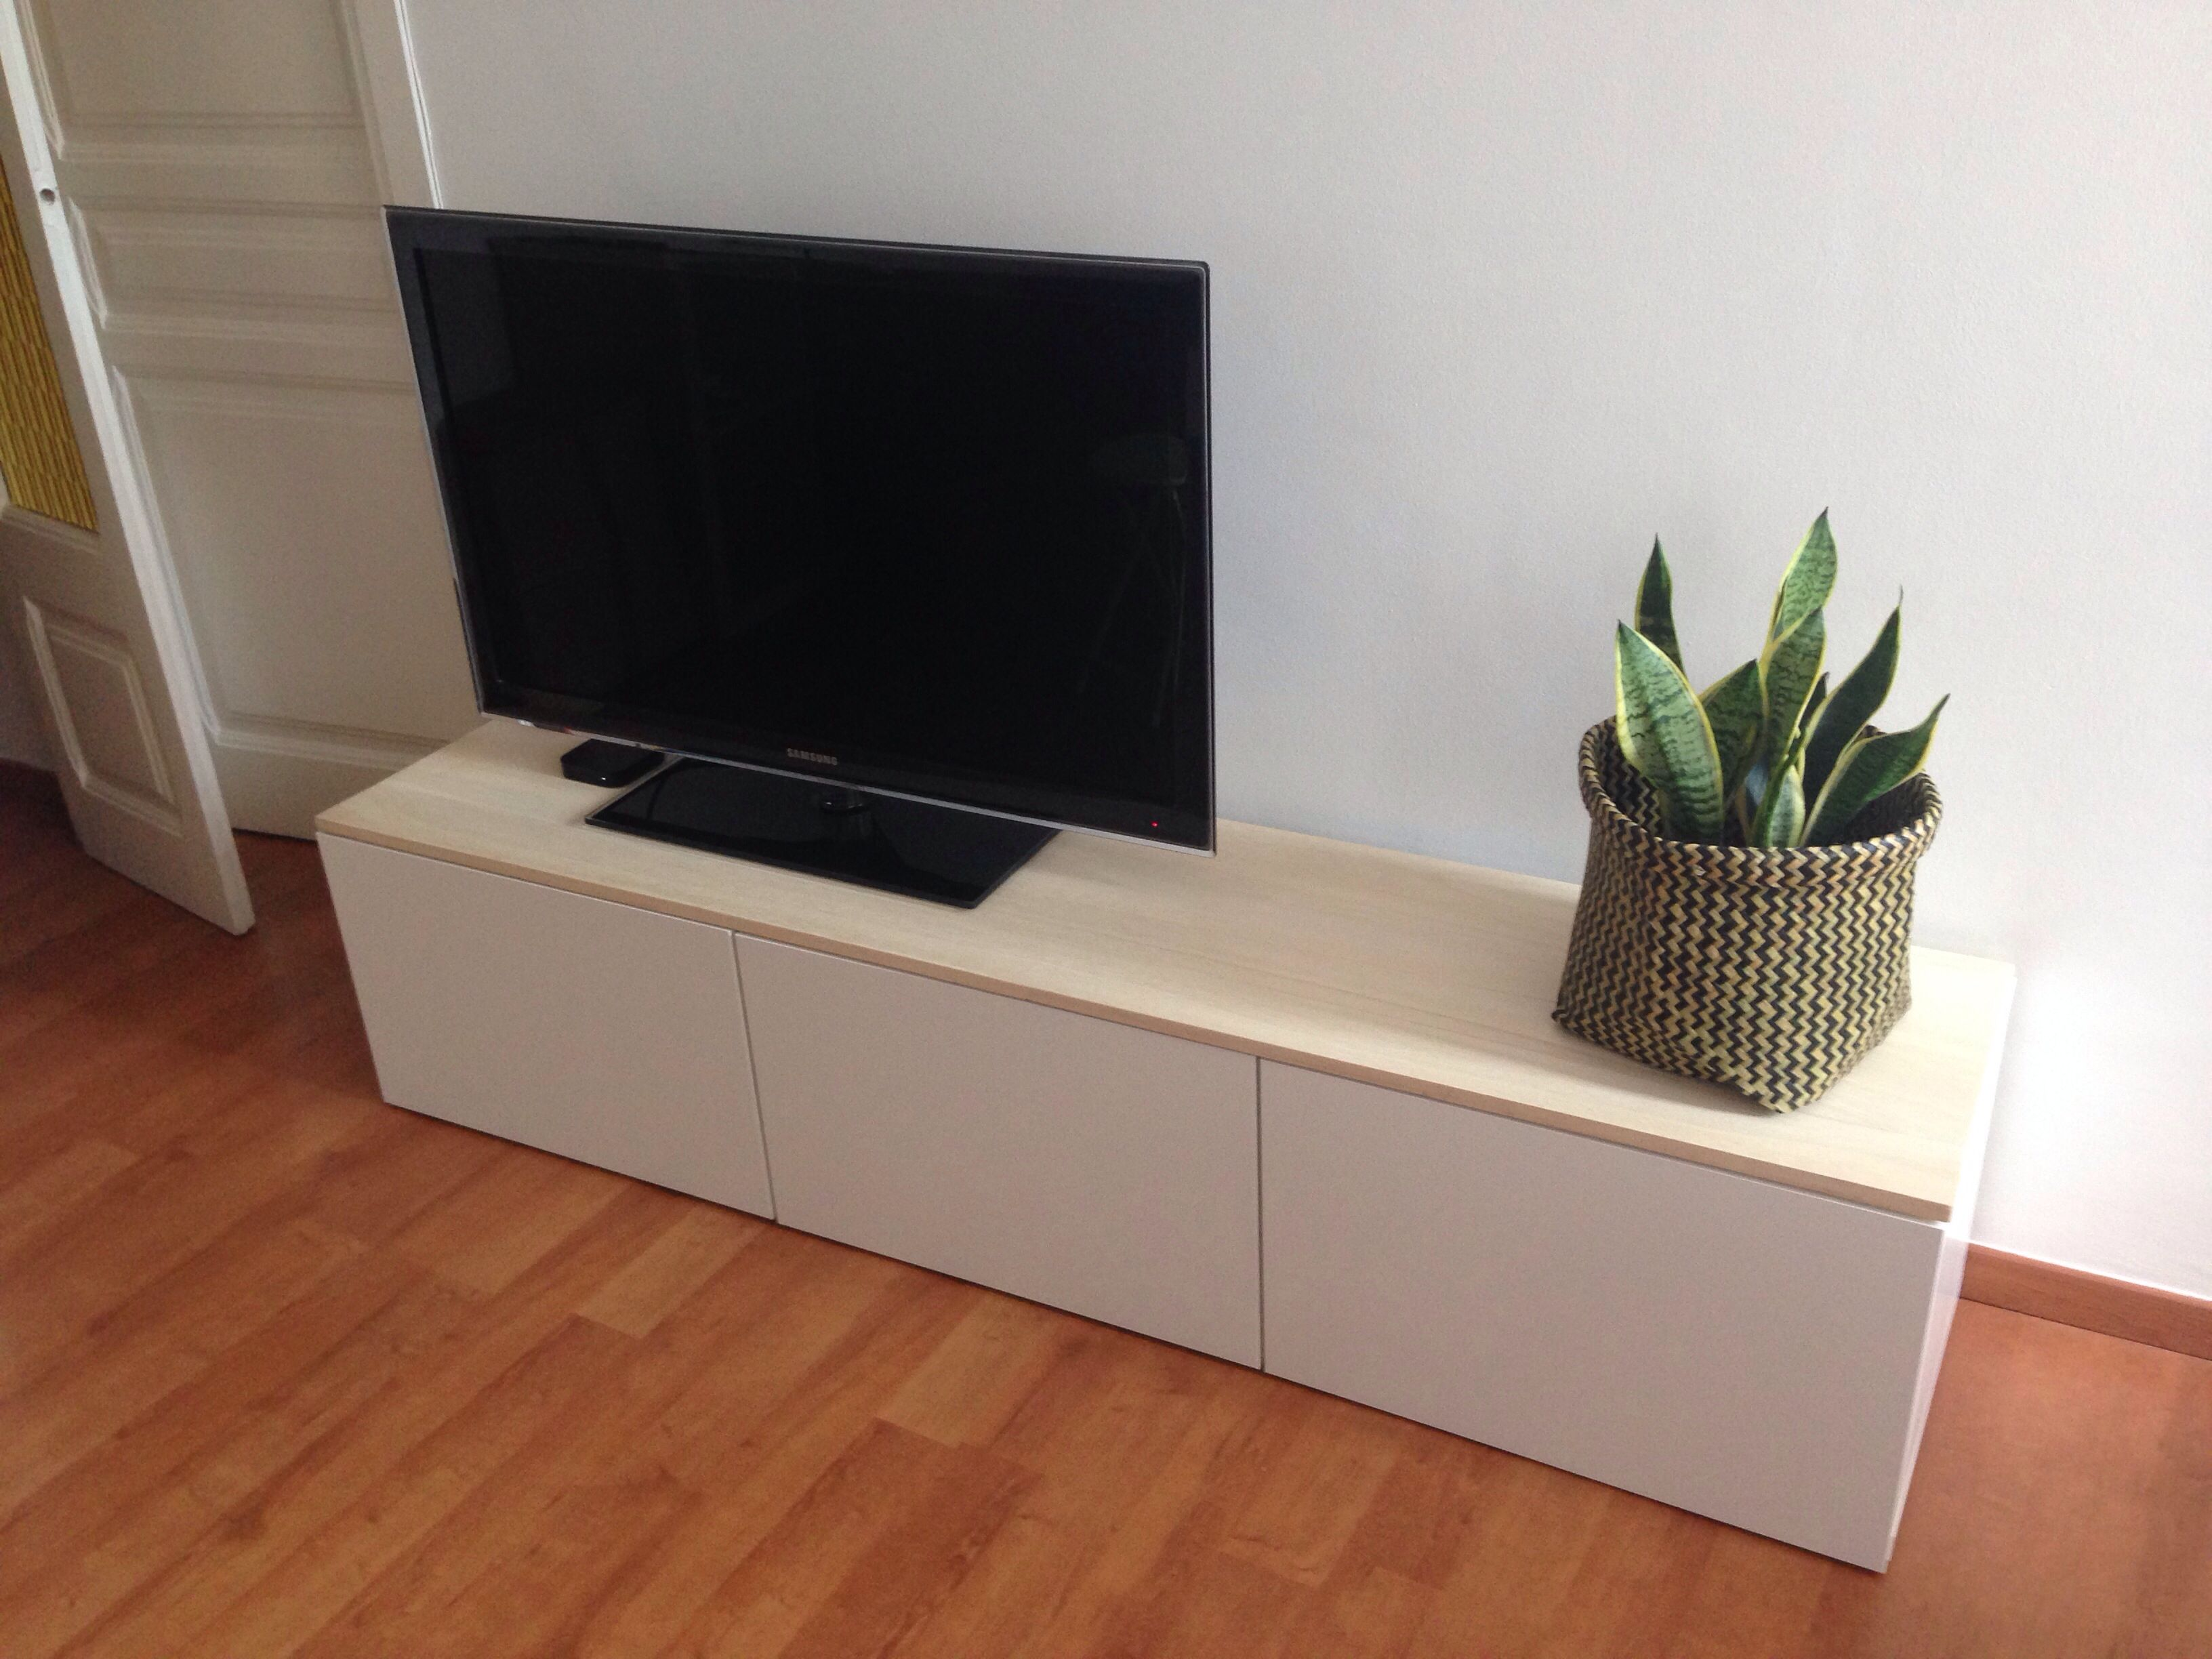 Mueble Tv Blanco Madera Mueble Tv Besta Blanco De Ikea Decorado Con Tablón De